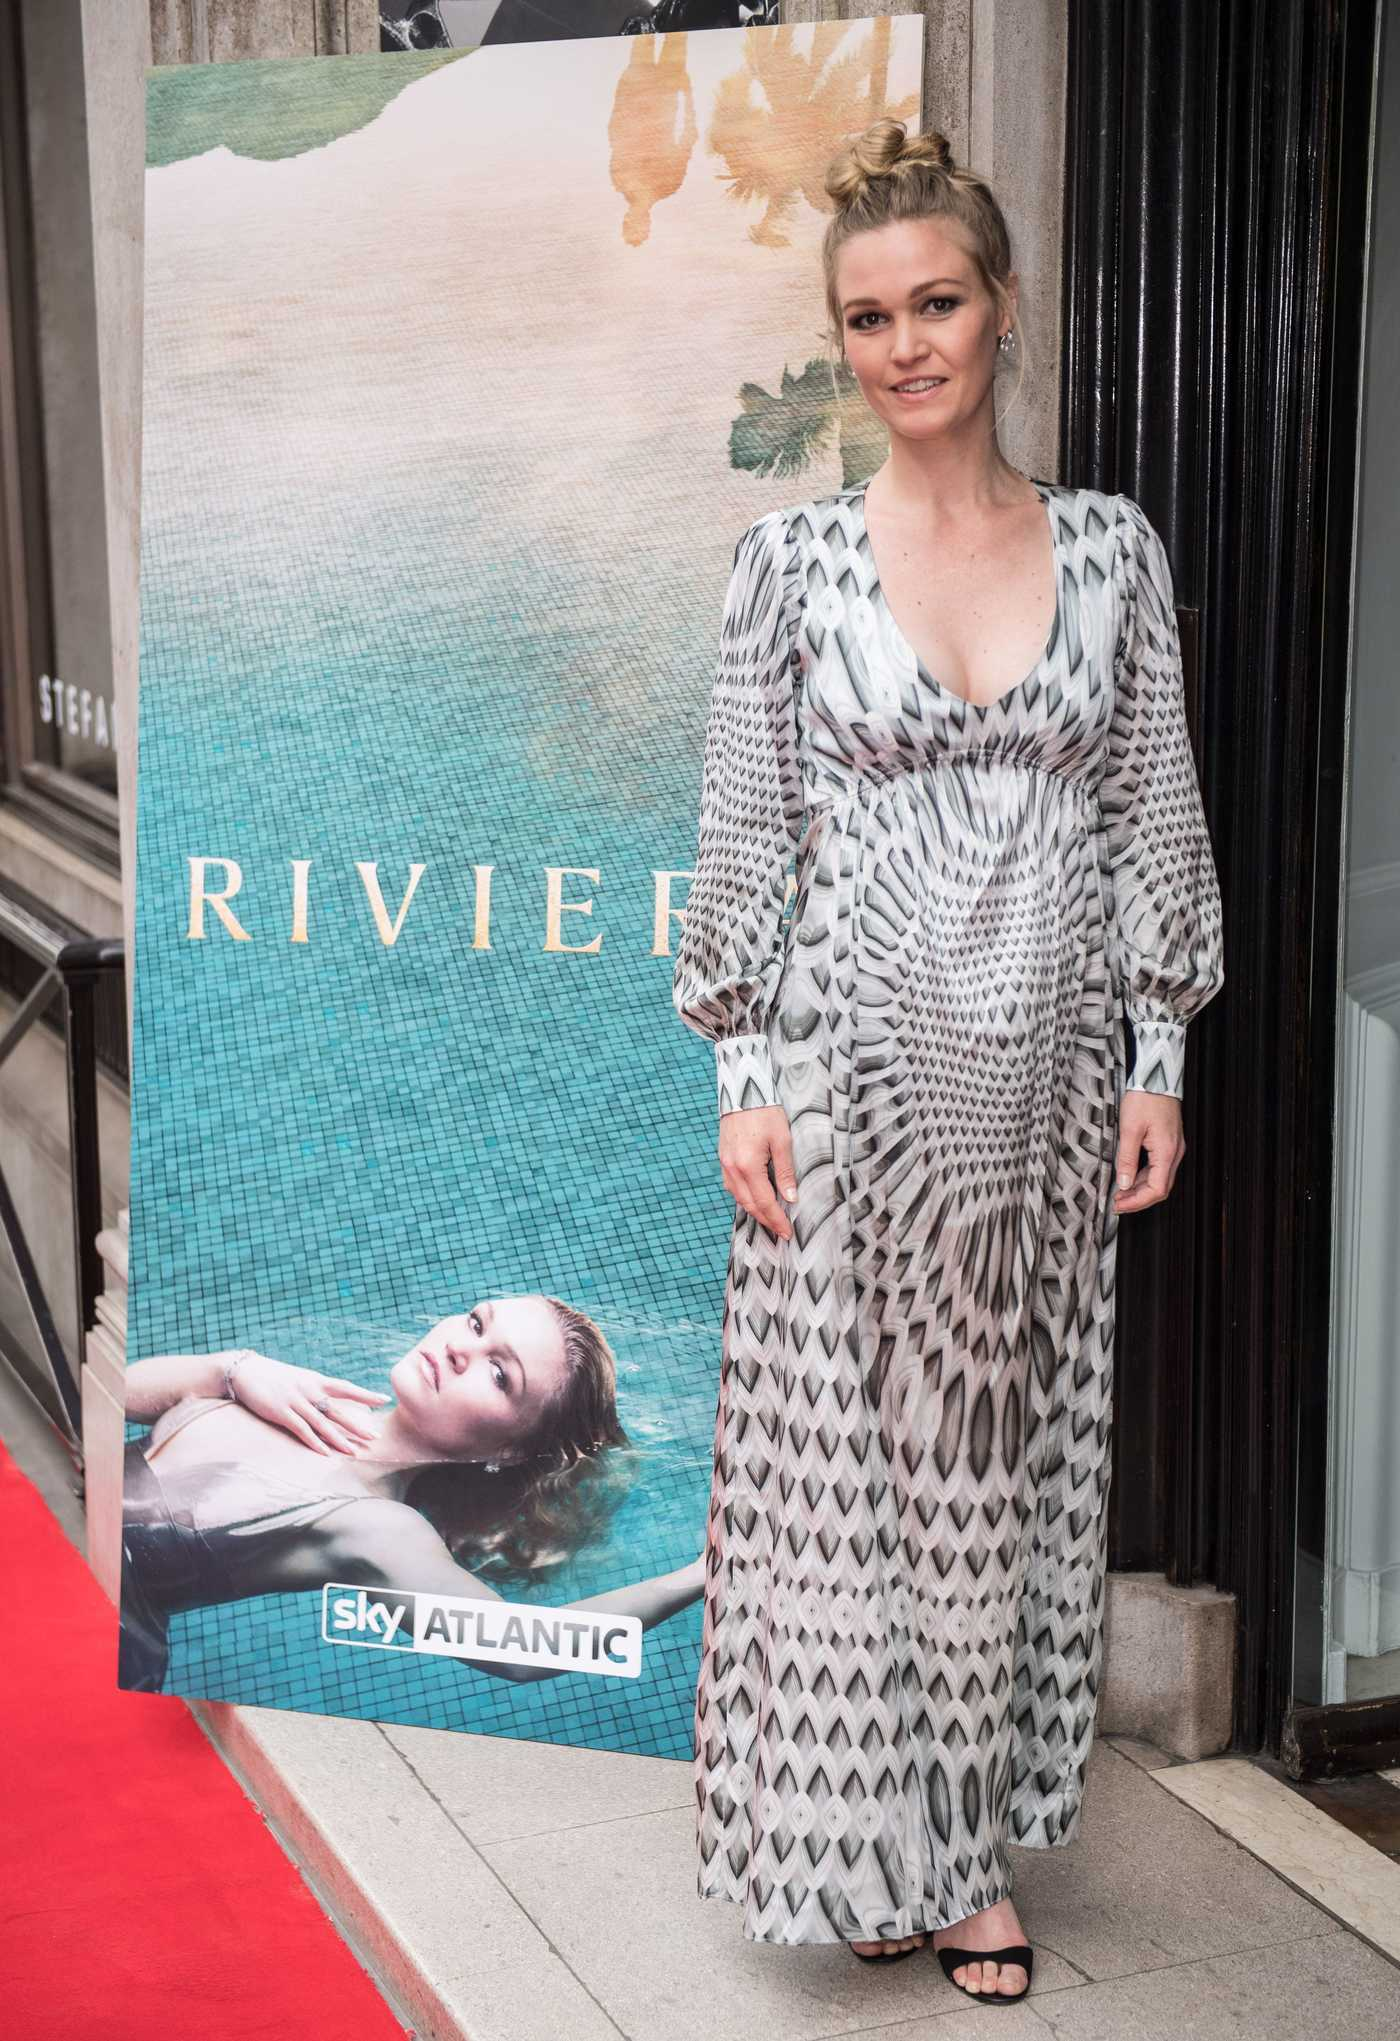 Julia Stiles at the Riviera Launch Event in London 06/13/2017